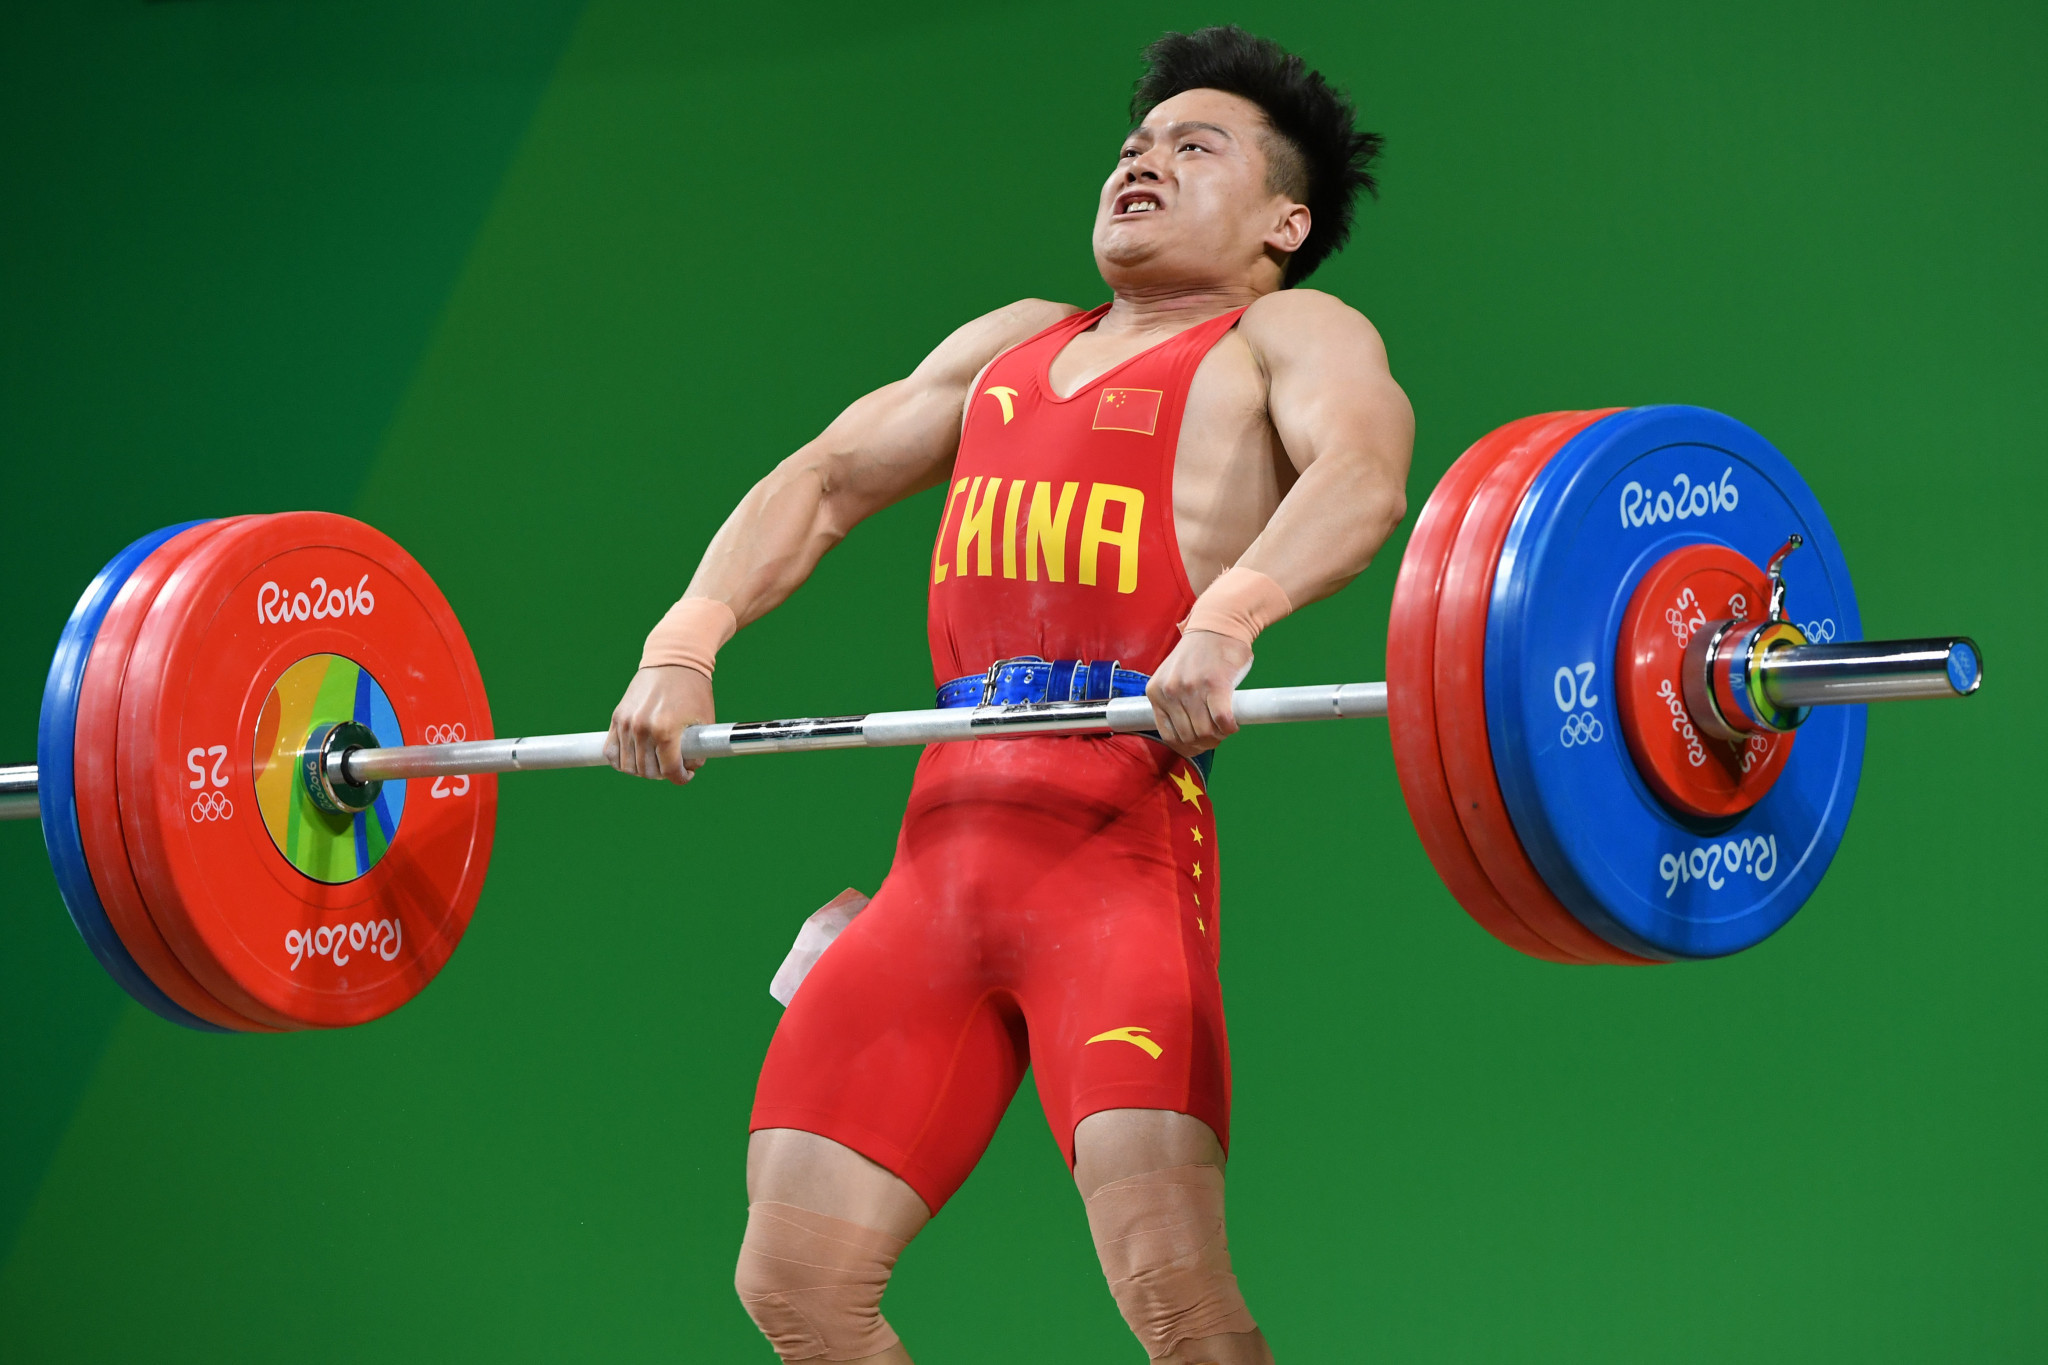 Weightlifting set to adopt new qualification system for Tokyo 2020 based on form